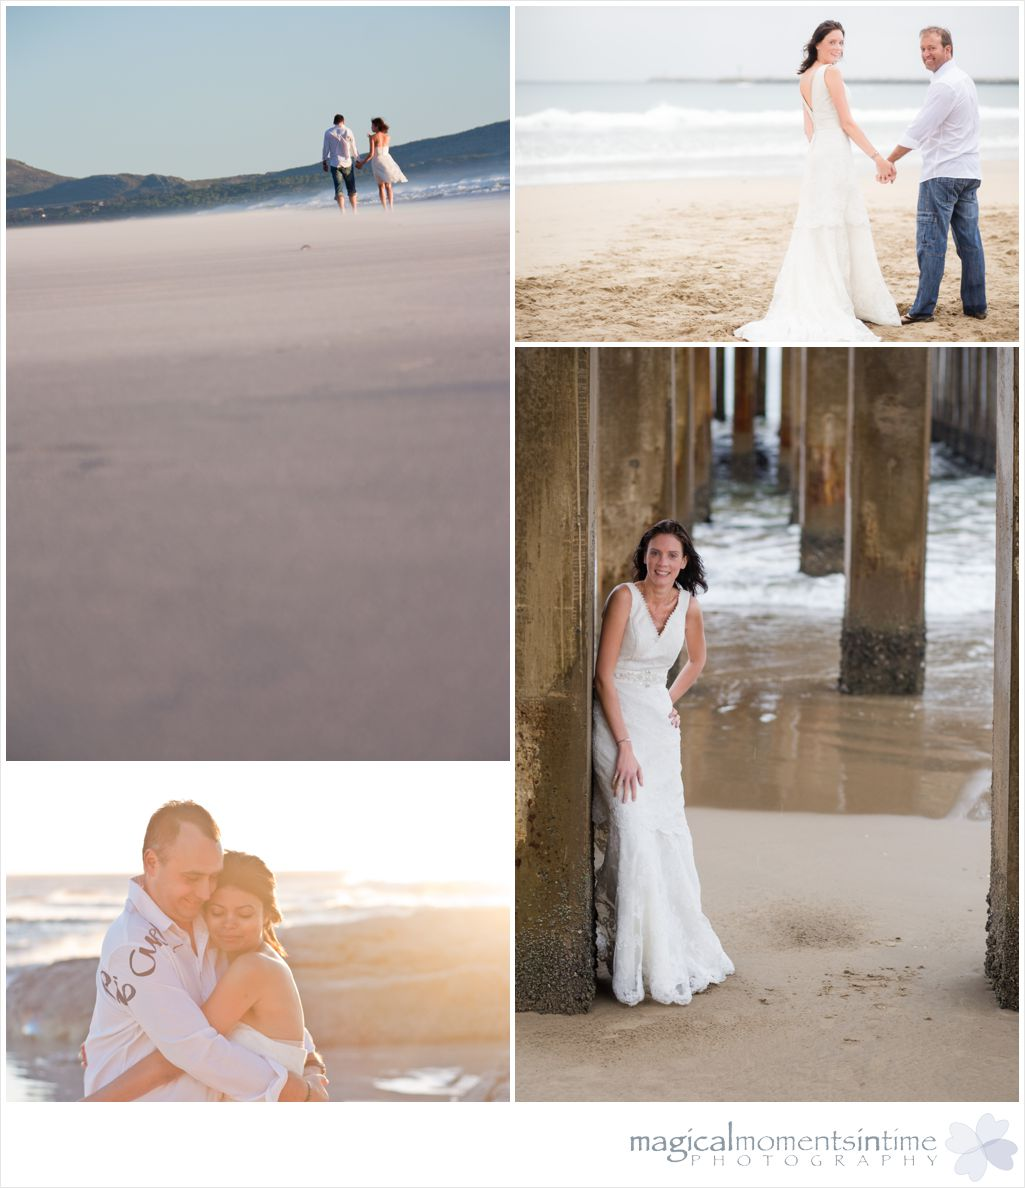 cape town and durban trash the dress sessions post wedding creative photo shoot